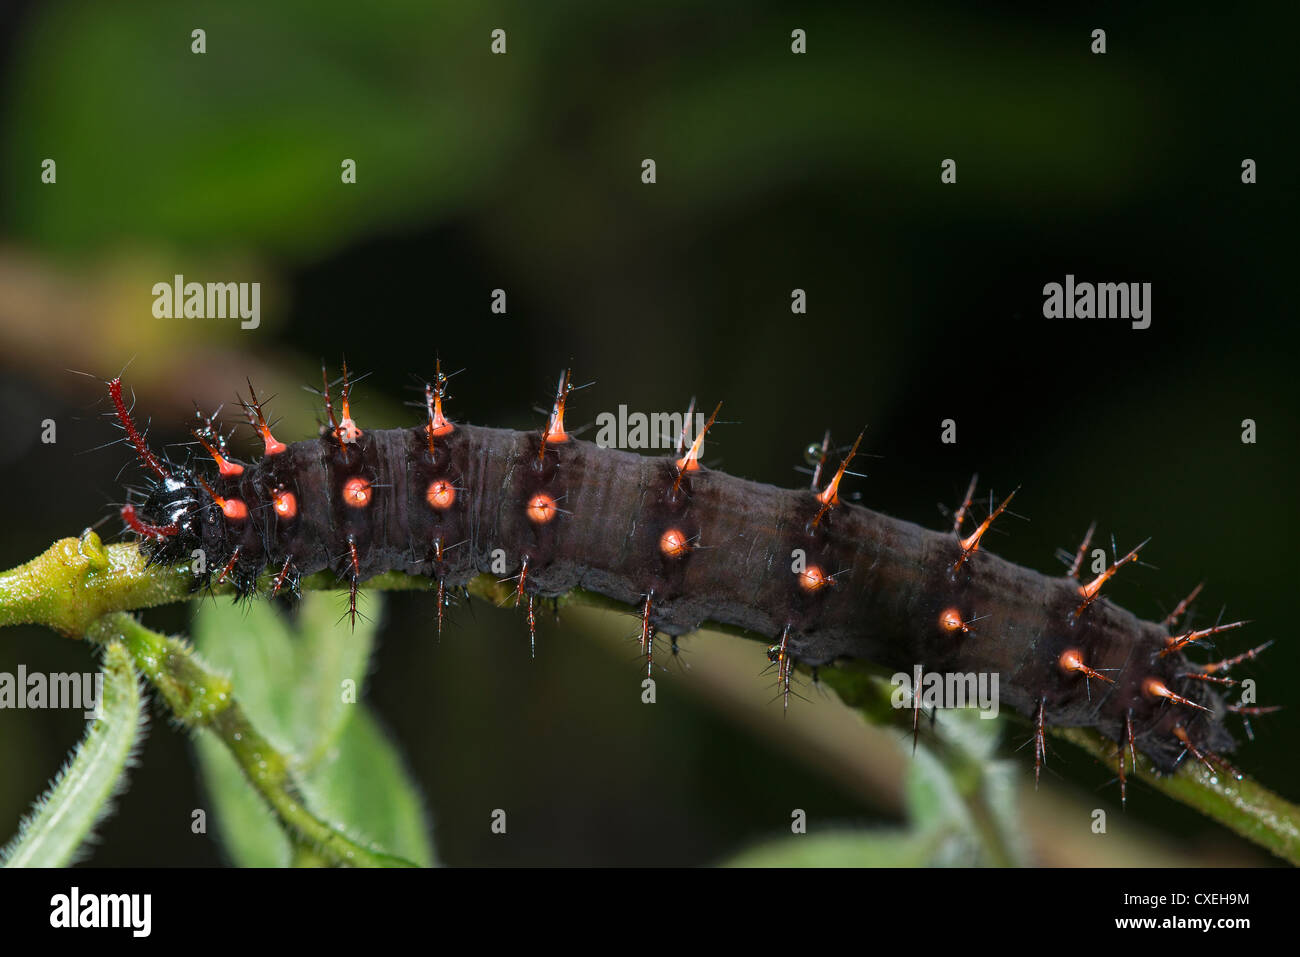 A larva of the Malachite butterfly - Stock Image